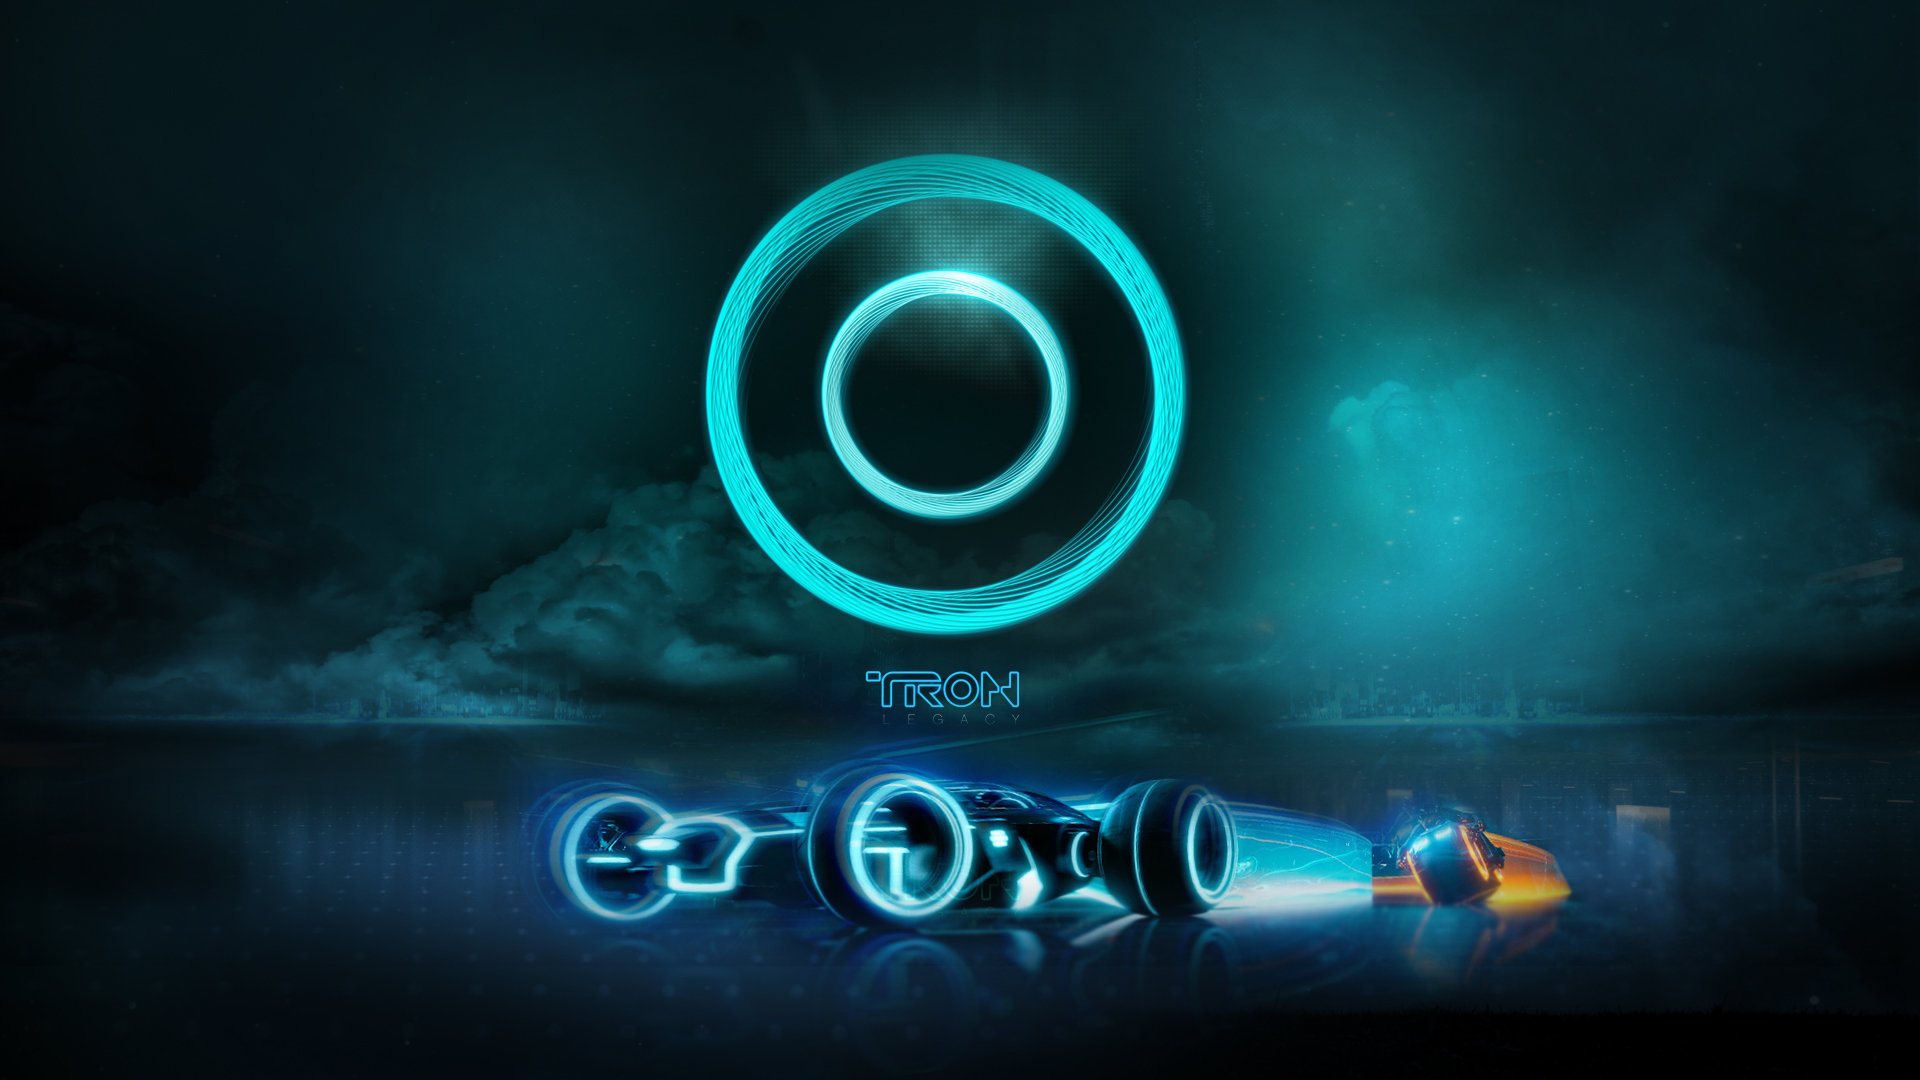 tron wallpapers downloads free